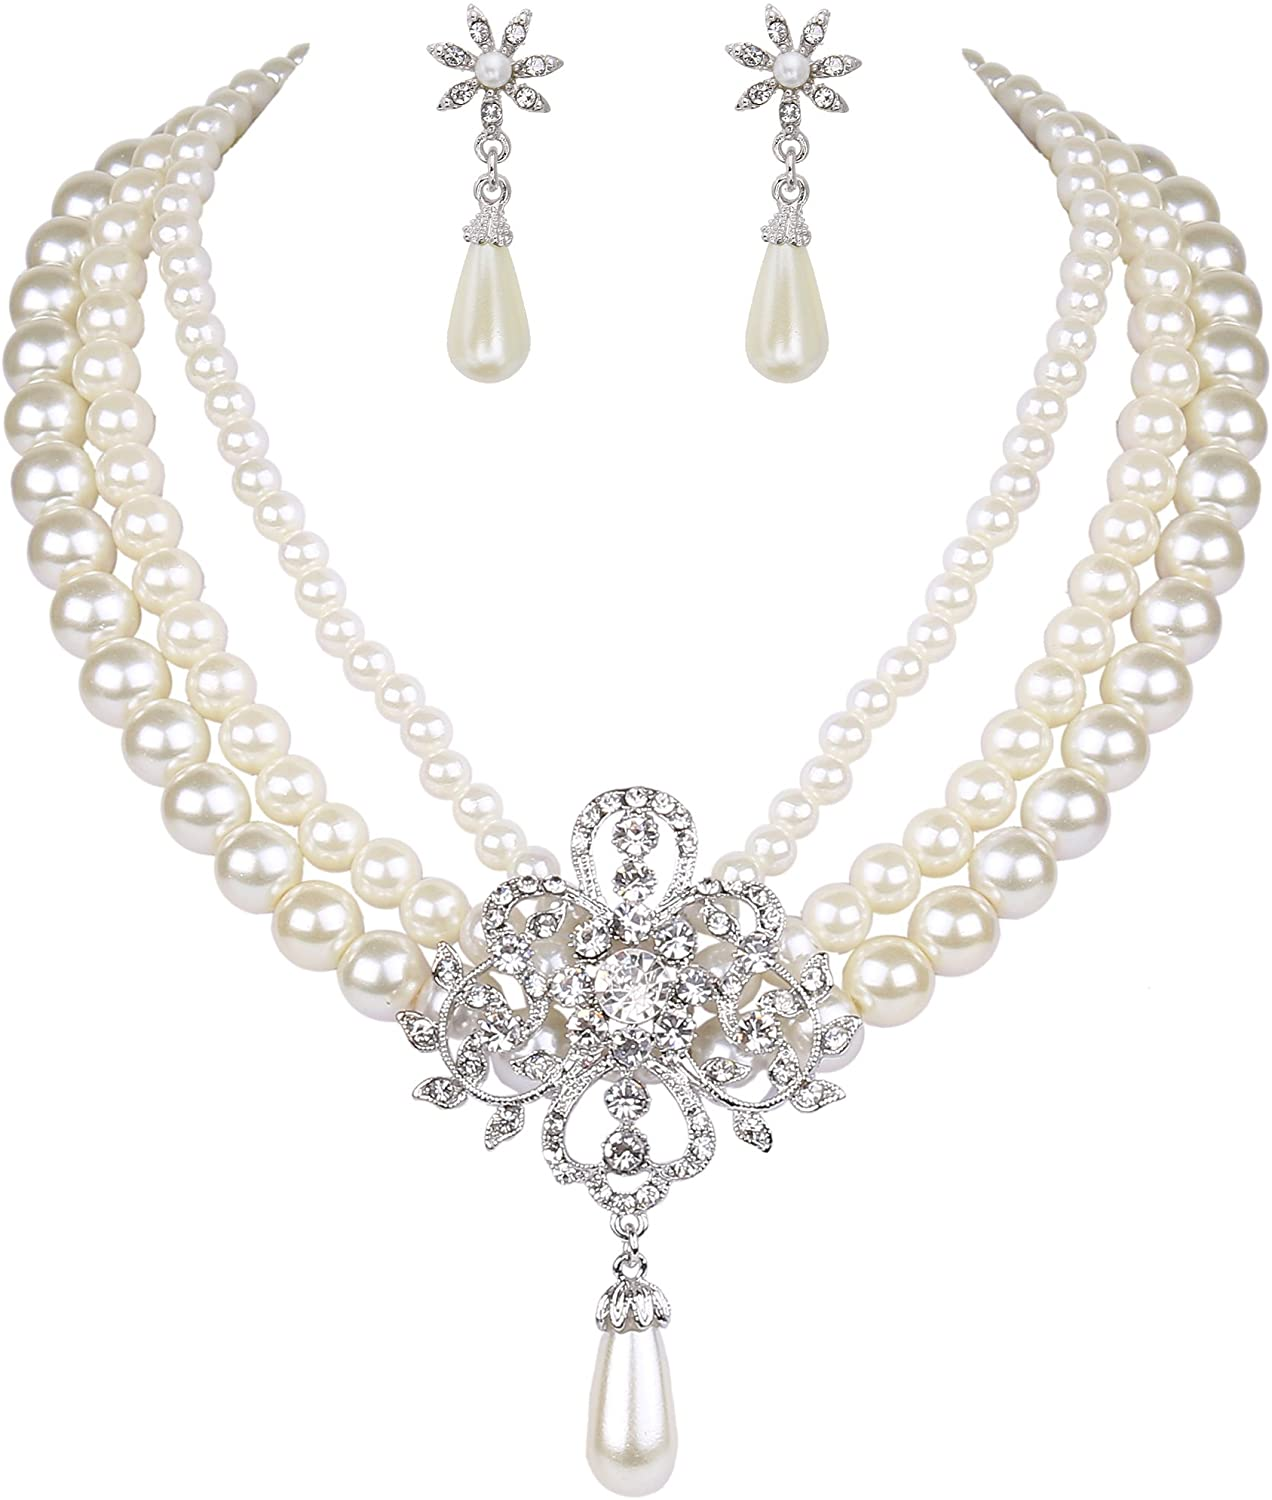 EleQueen Women's Silver-Tone Ivory Simulated Pearls Crystal Victorian Style Statement Necklace Earrings Bridal Wedding Sets